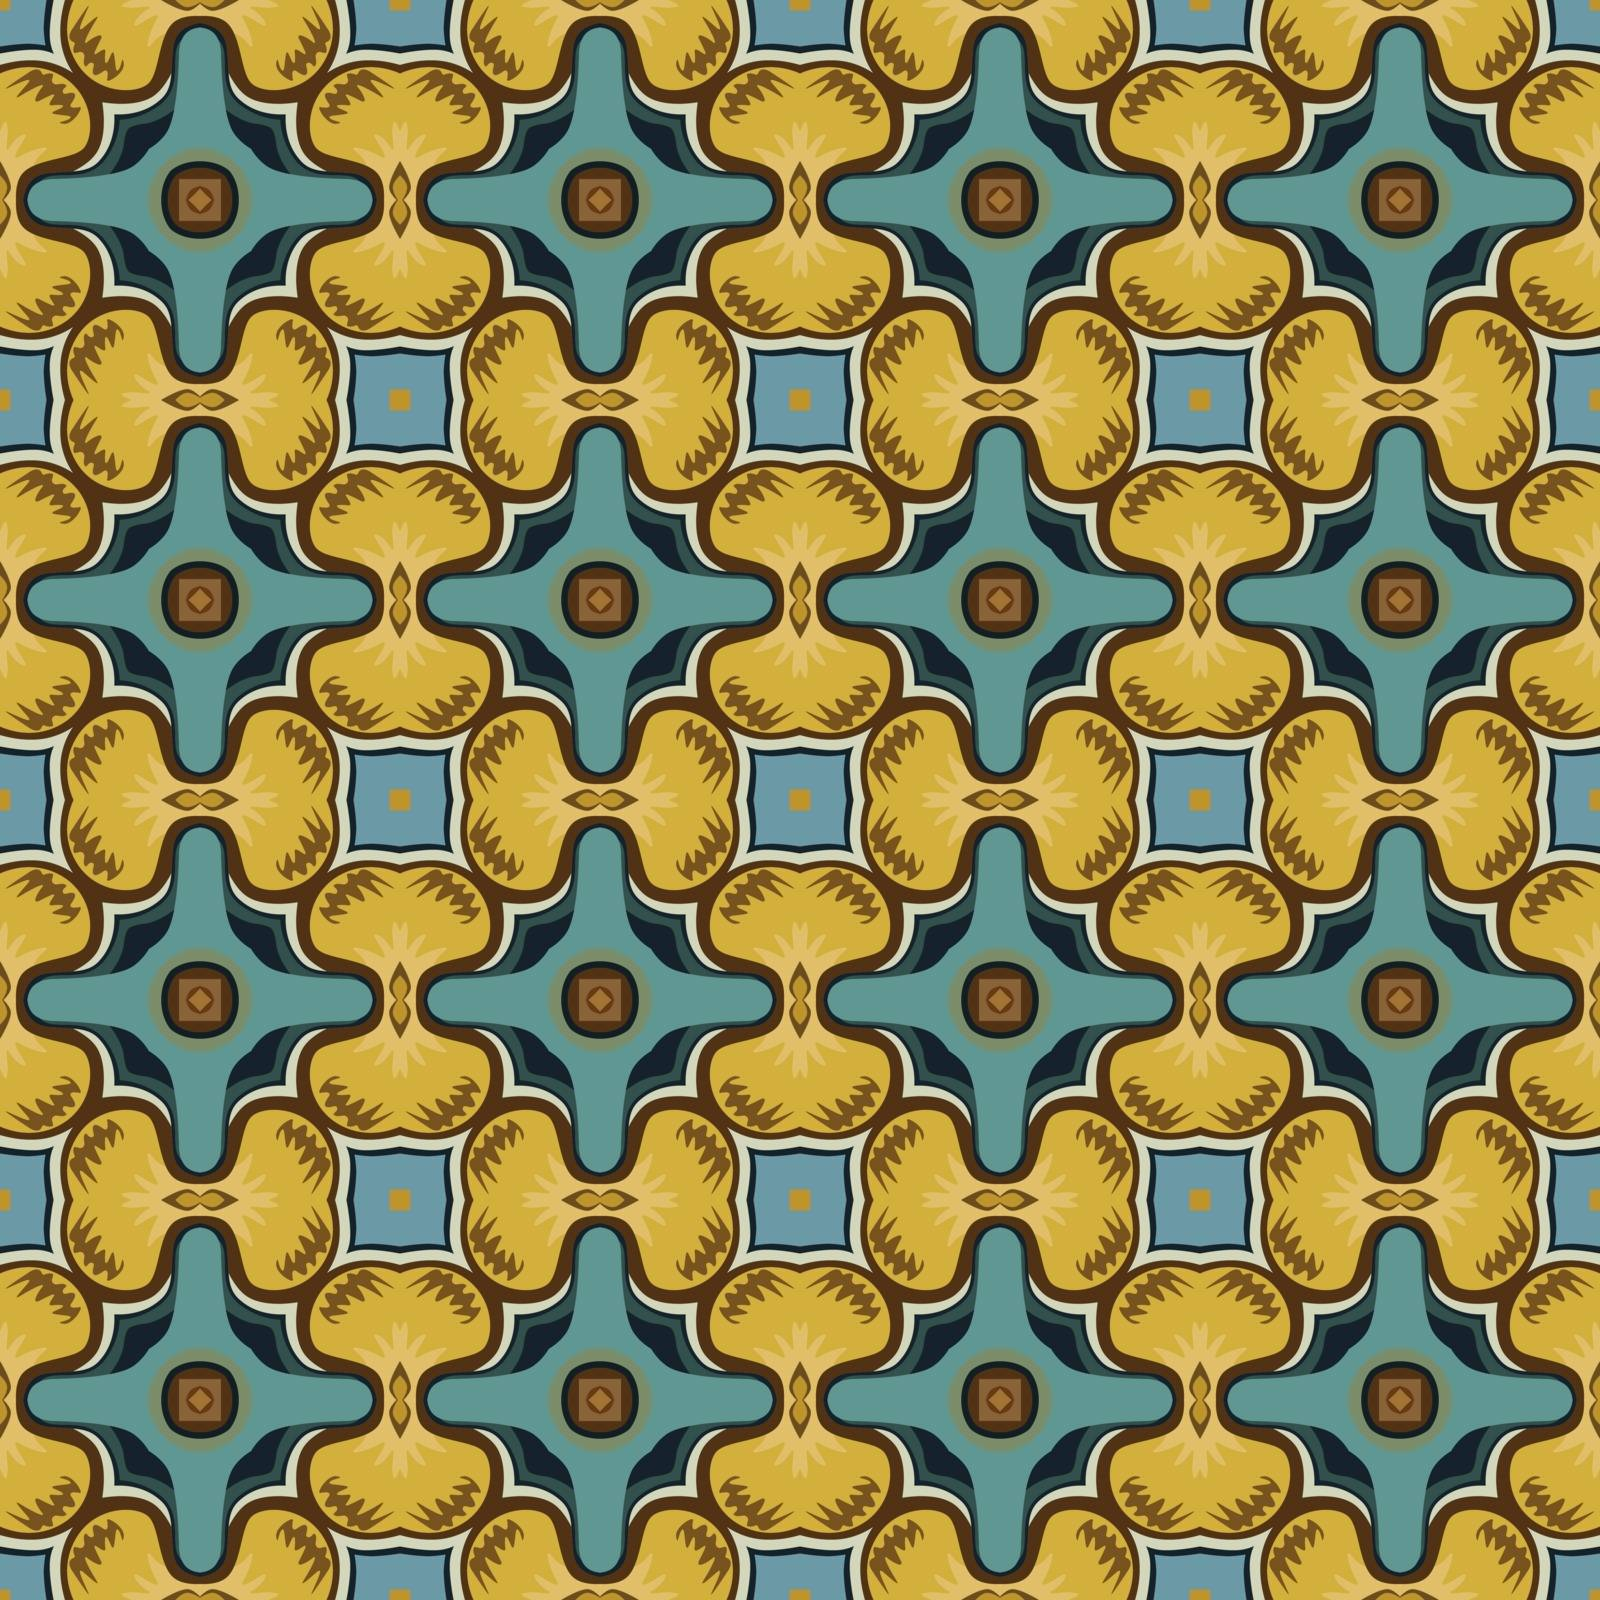 Seamless illustrated pattern made of abstract elements in beige,blue, yellow and brown